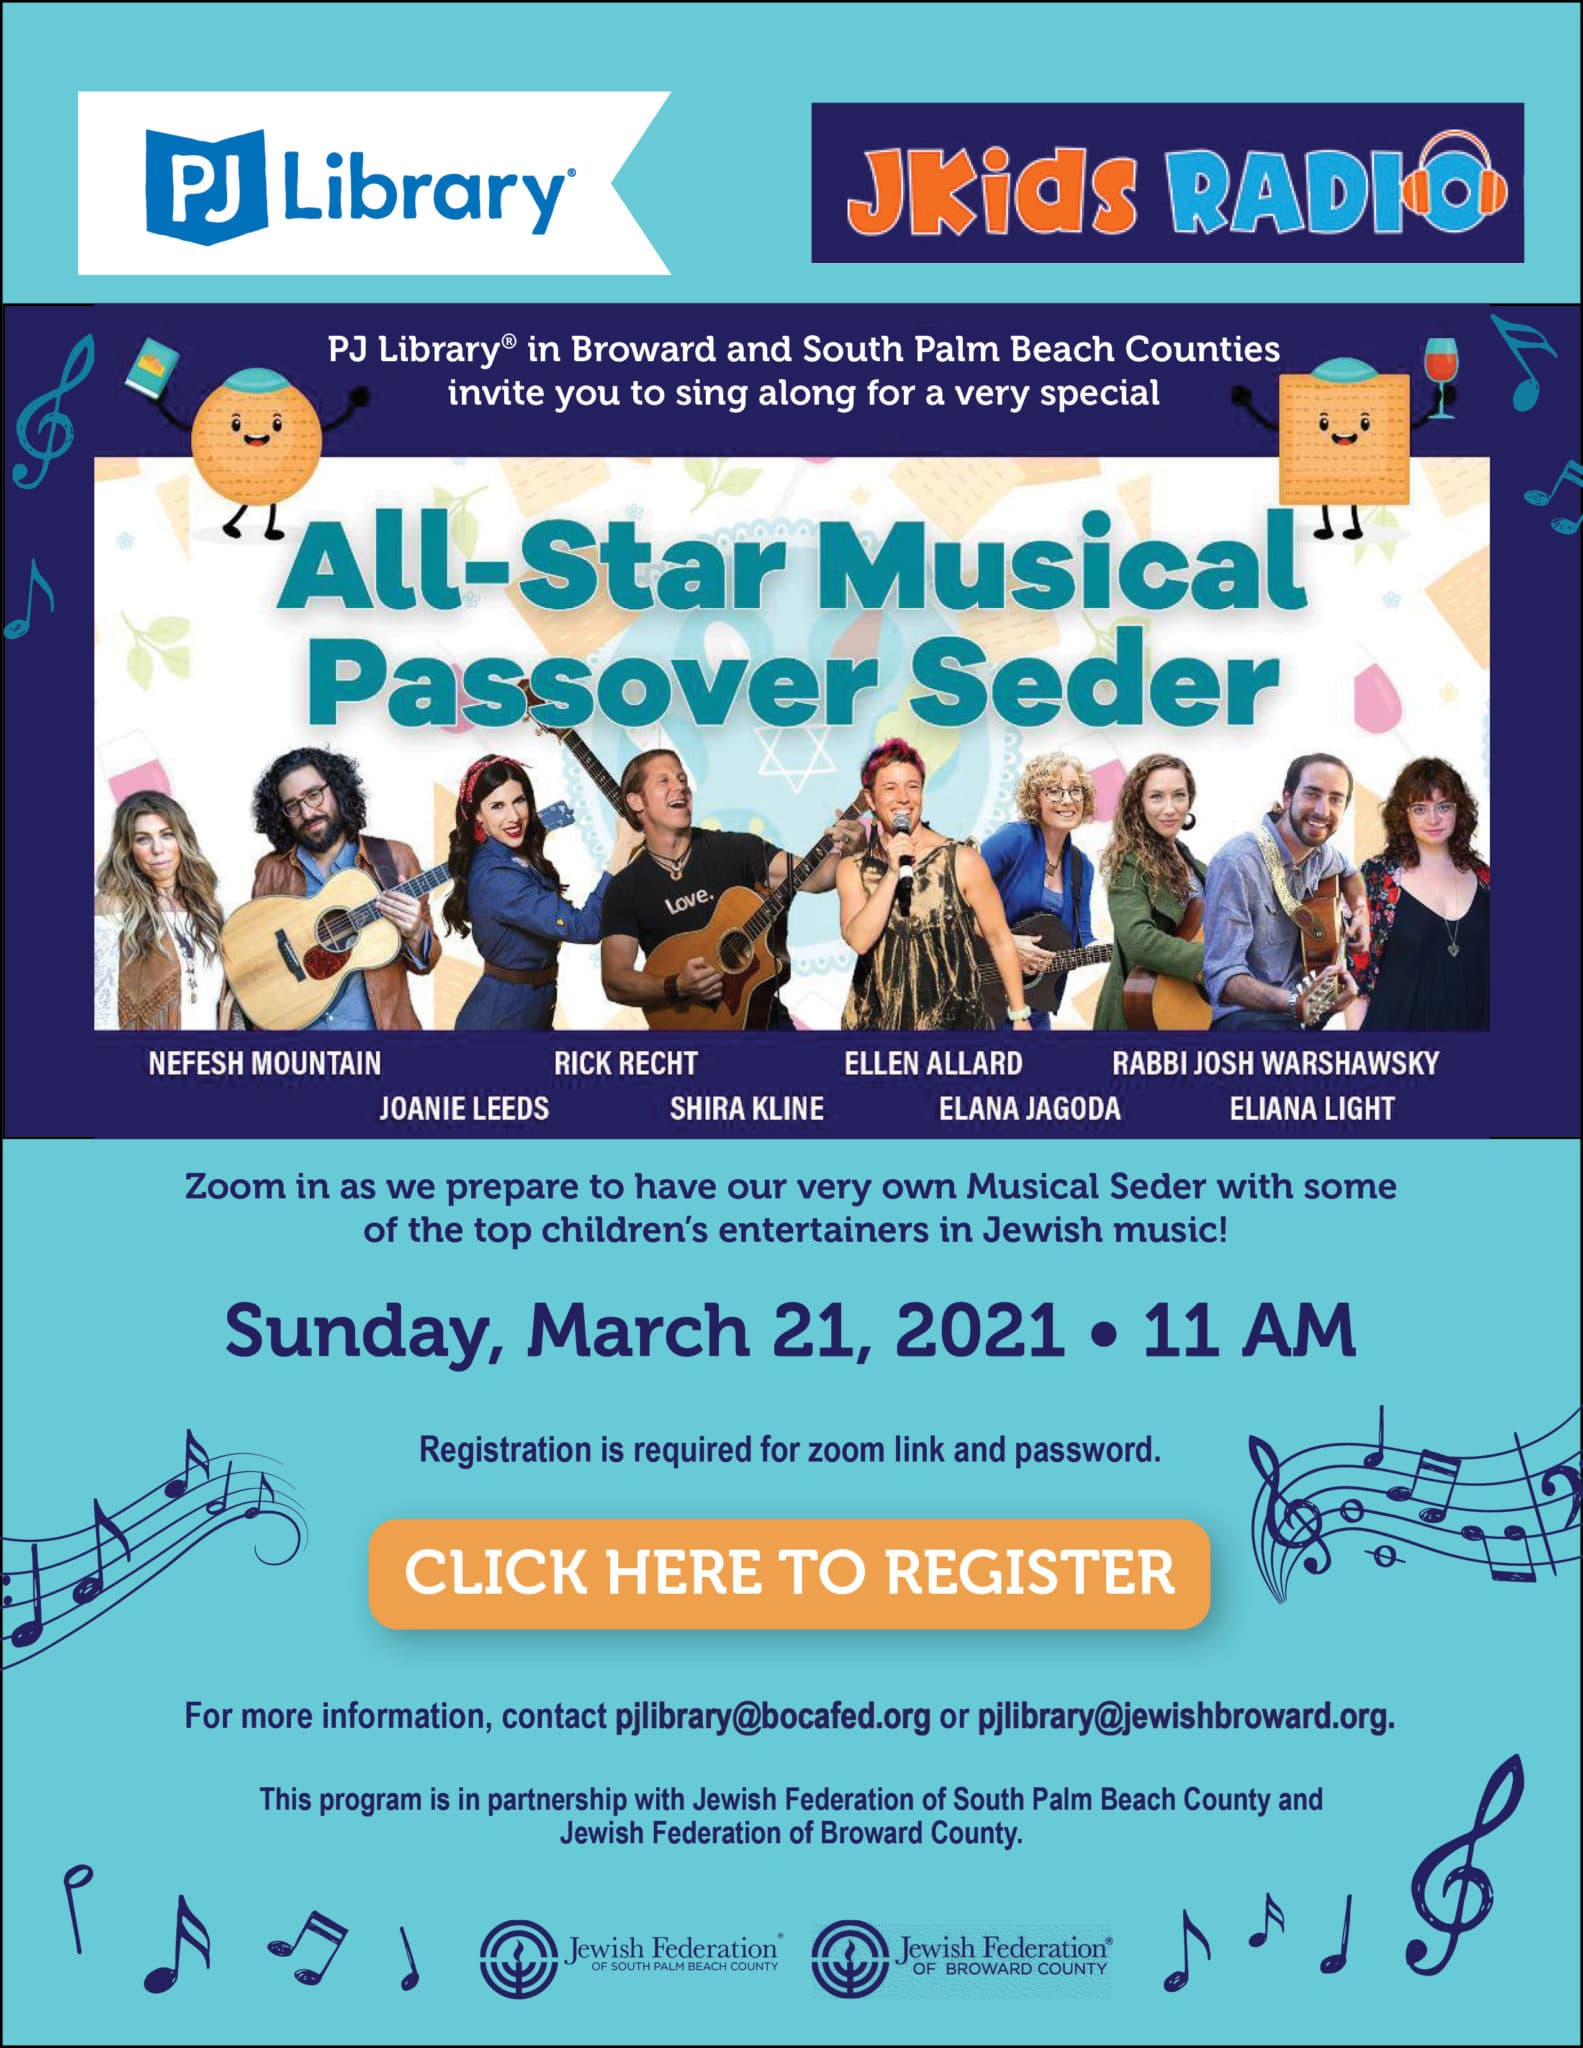 2020 PJ LIBRARY PASSOVER CONCERT FLYER